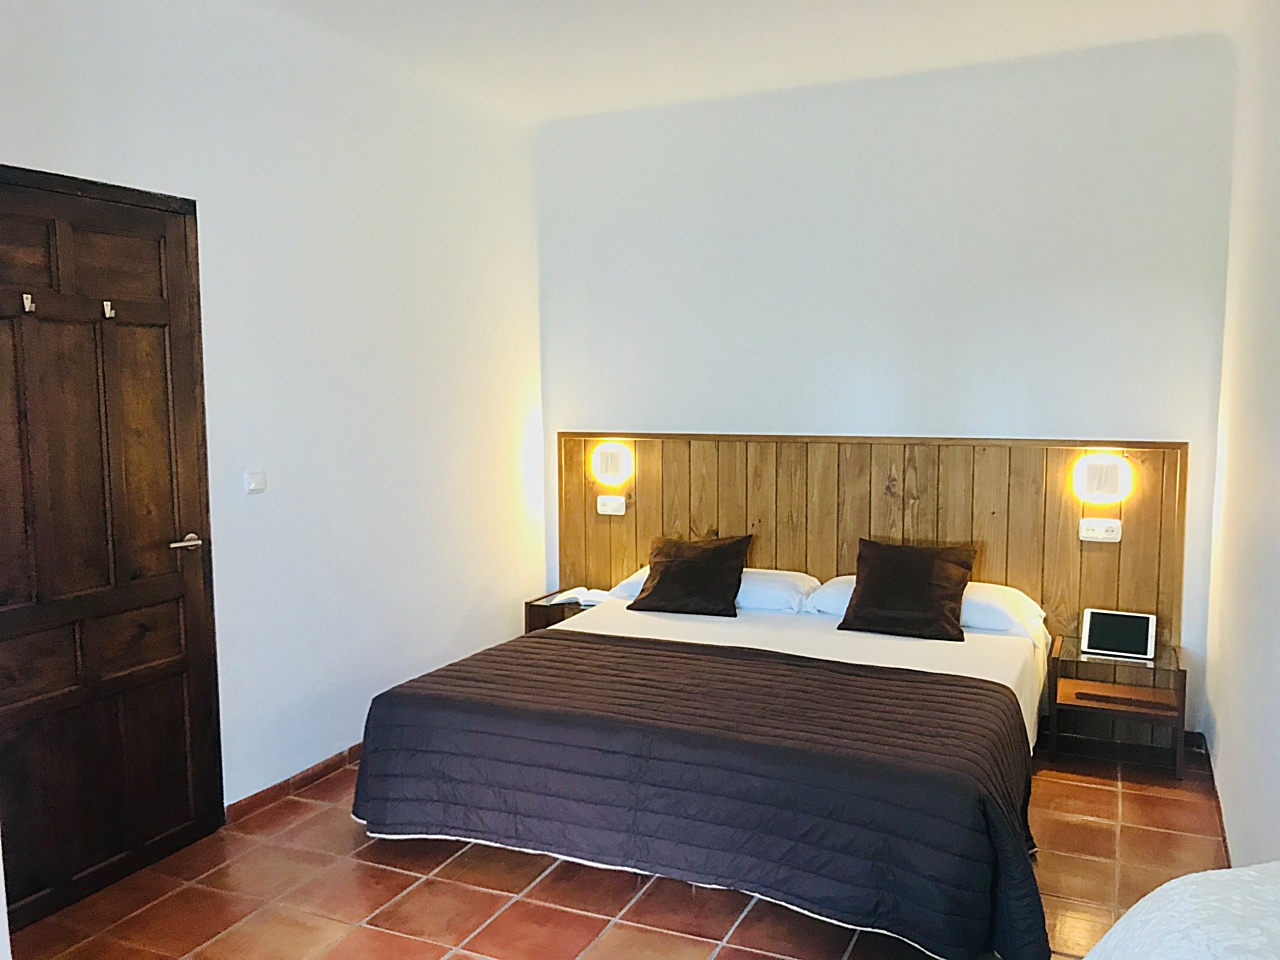 Apartment 4 people garden - Apartments - Web Oficial de La Oveja Verde de La Alpujarra